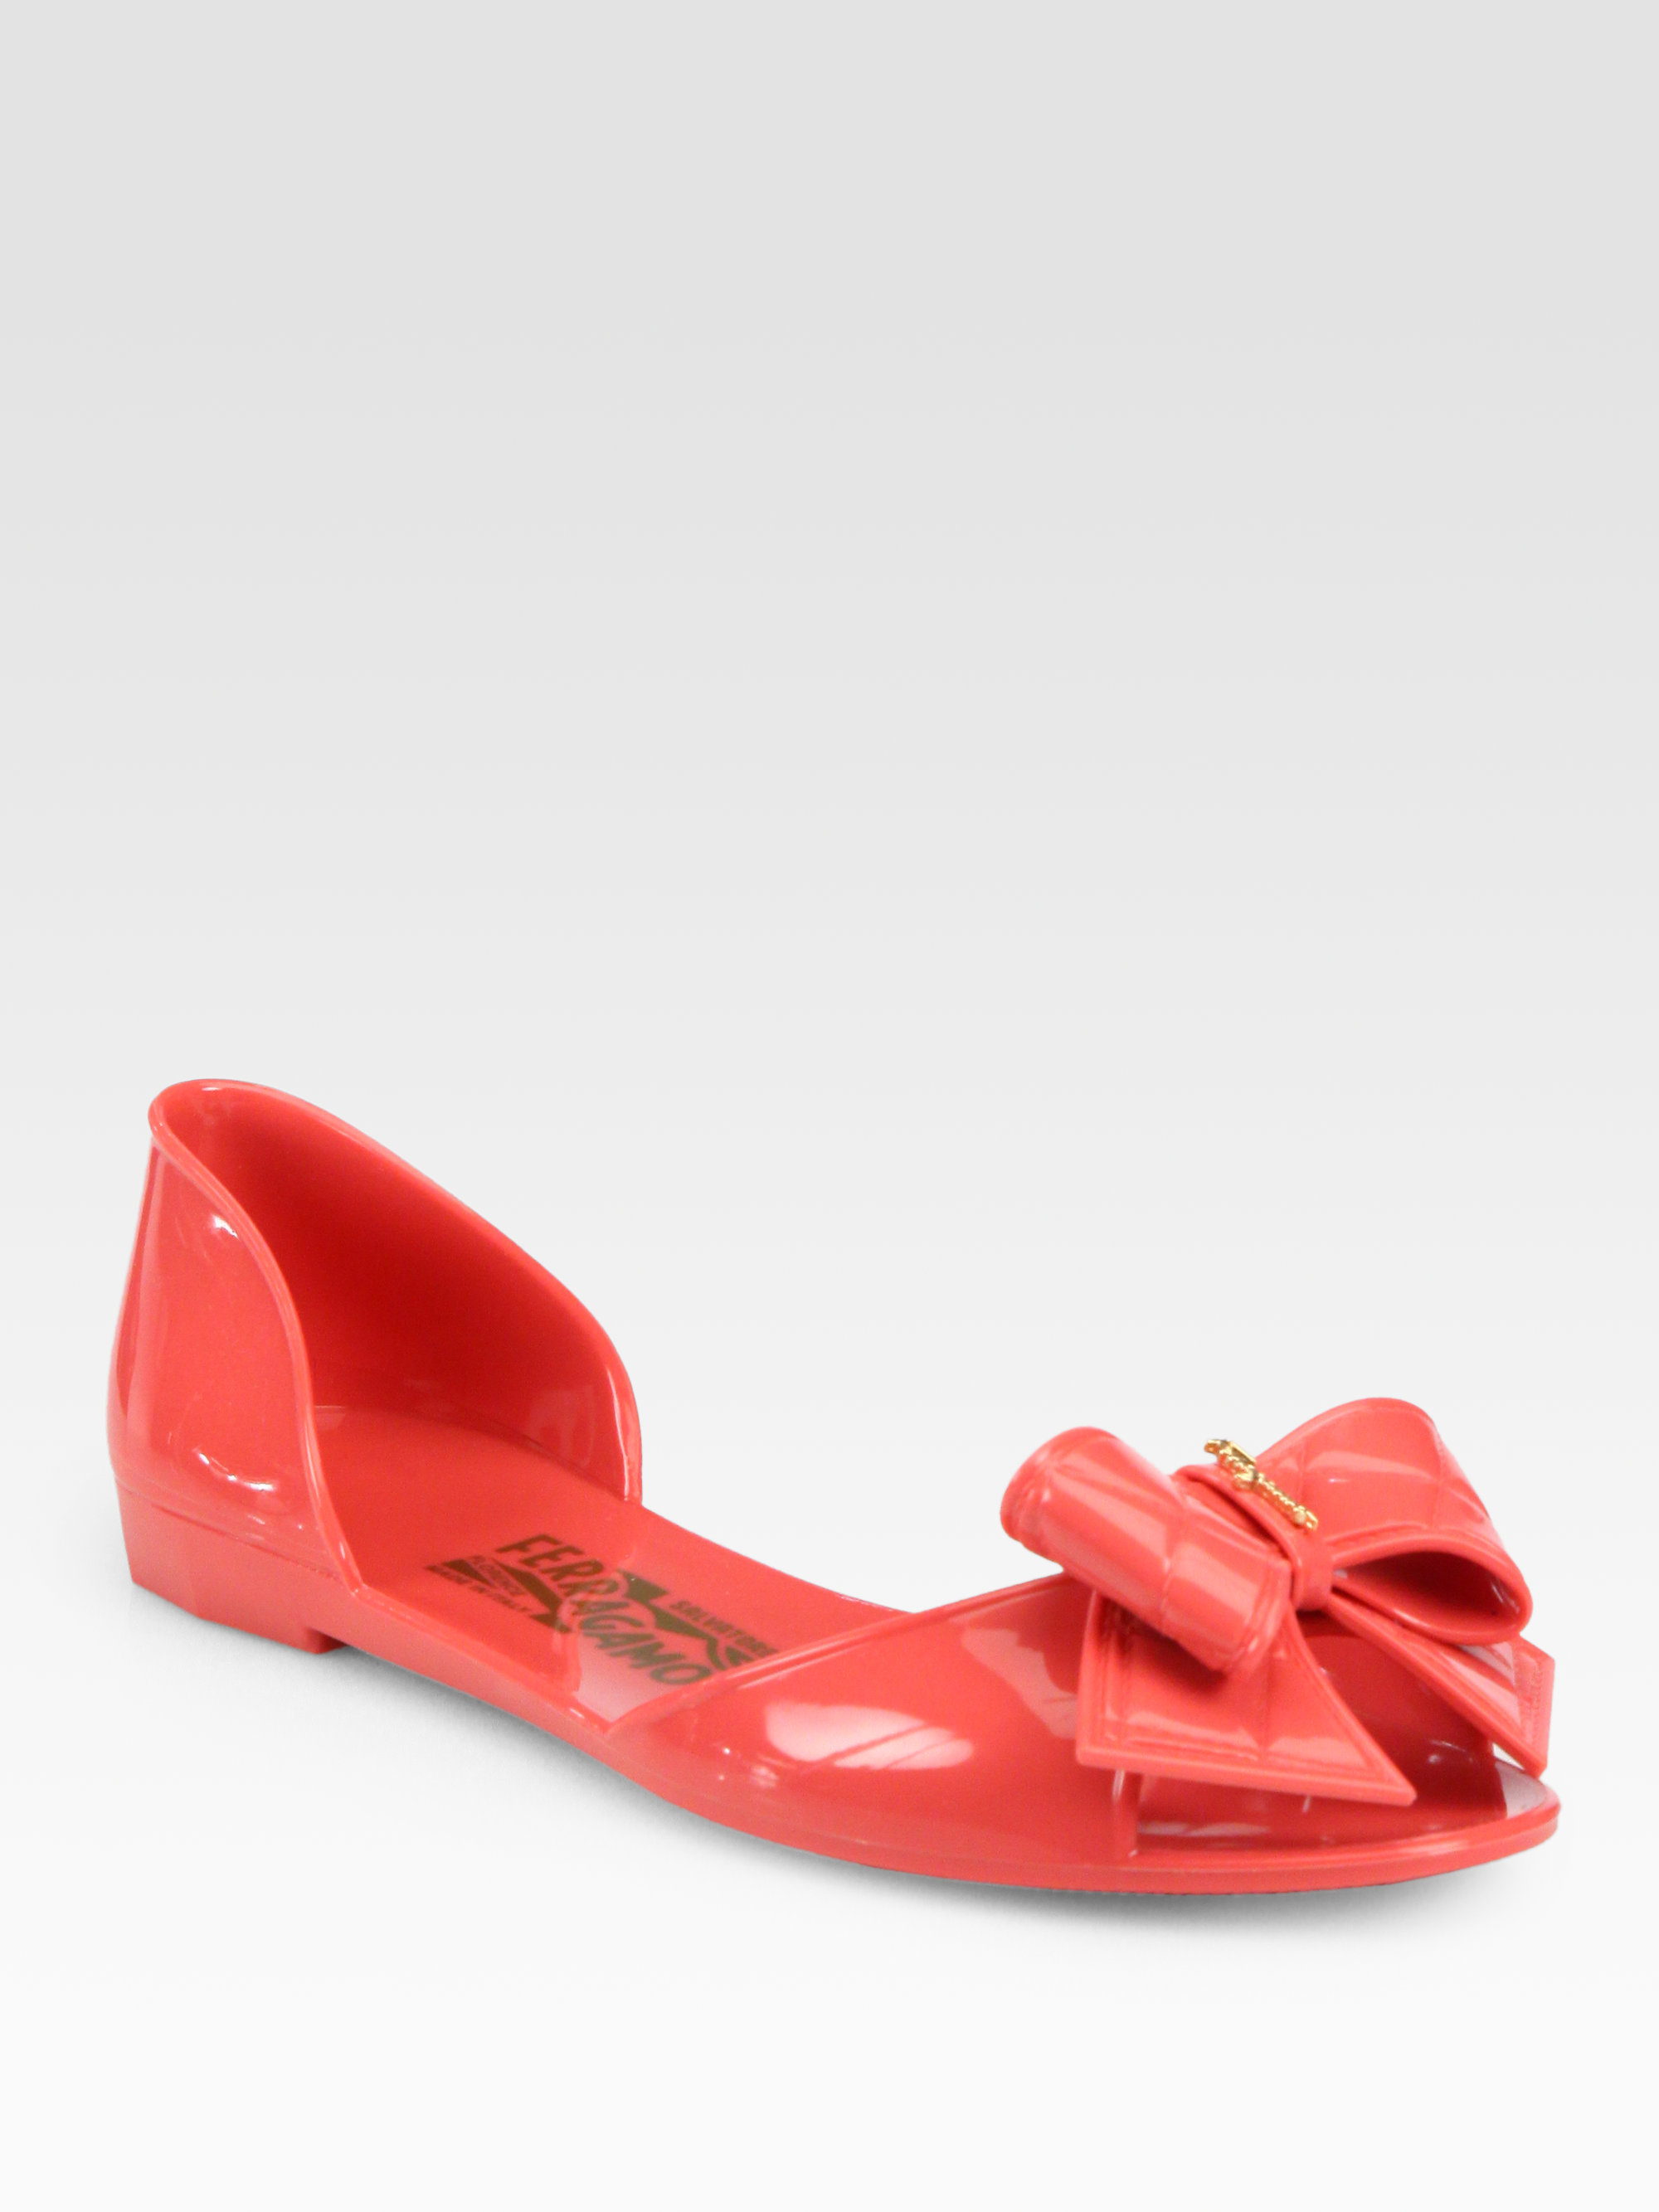 562757b1e8d9 Lyst ferragamo barbados jelly sandals in red jpg 2000x2667 Red jelly flats